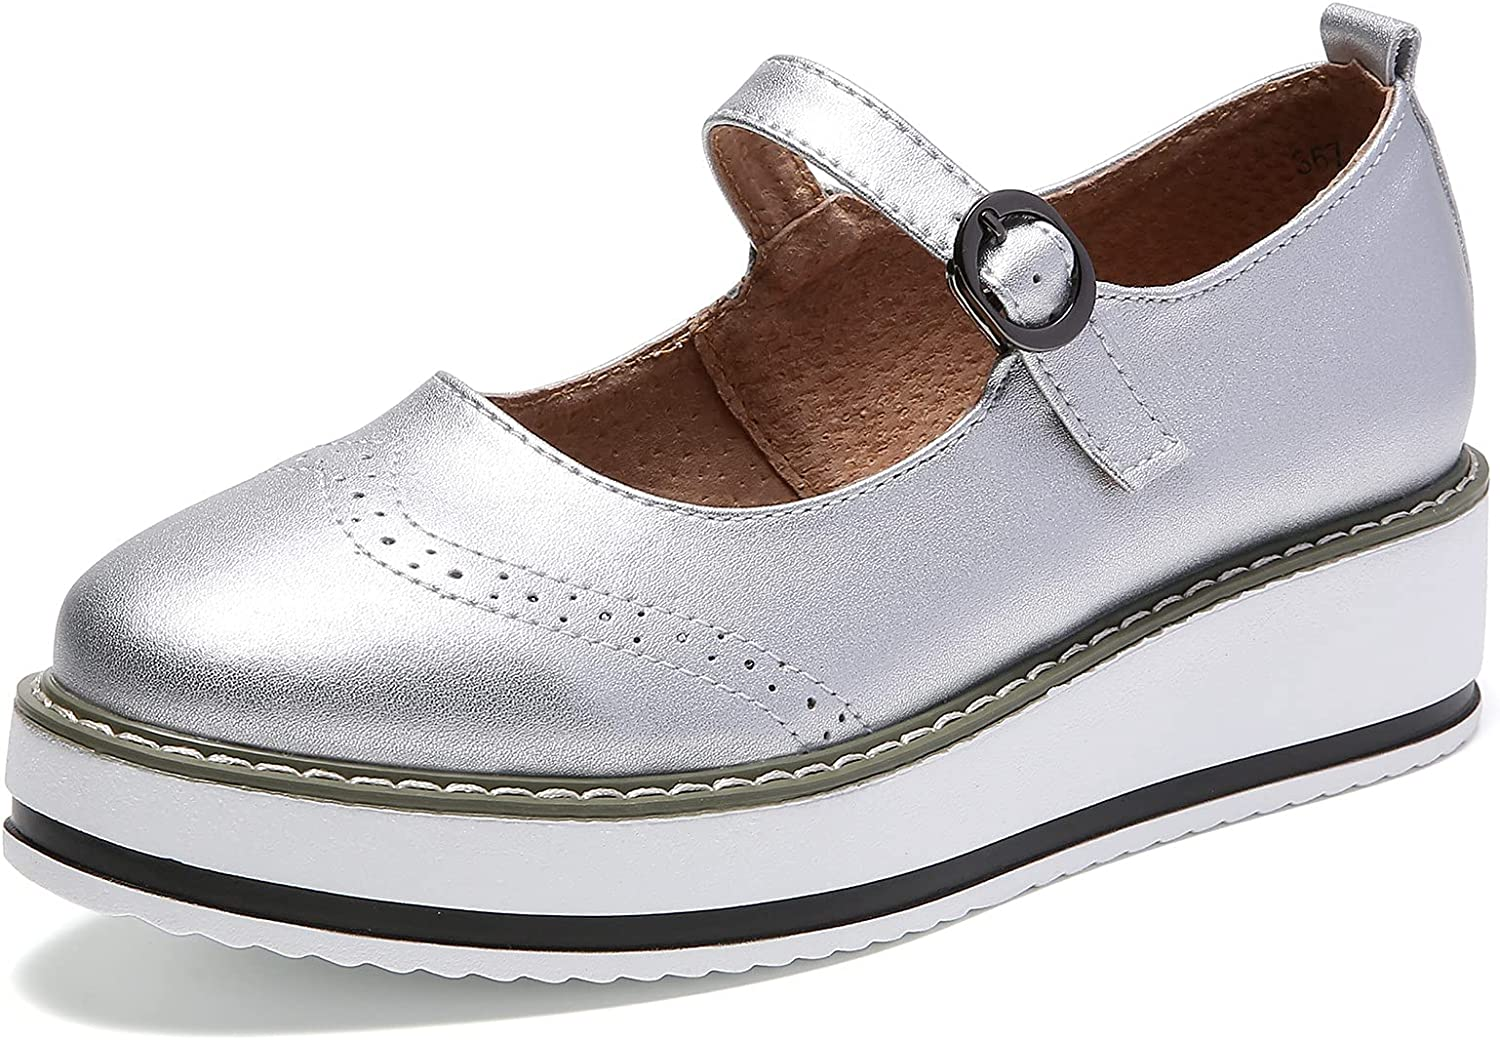 DADAWEN Women's Platform Ankle Max 70% OFF Now on sale Strap Toe Janes Mary Wedges Round